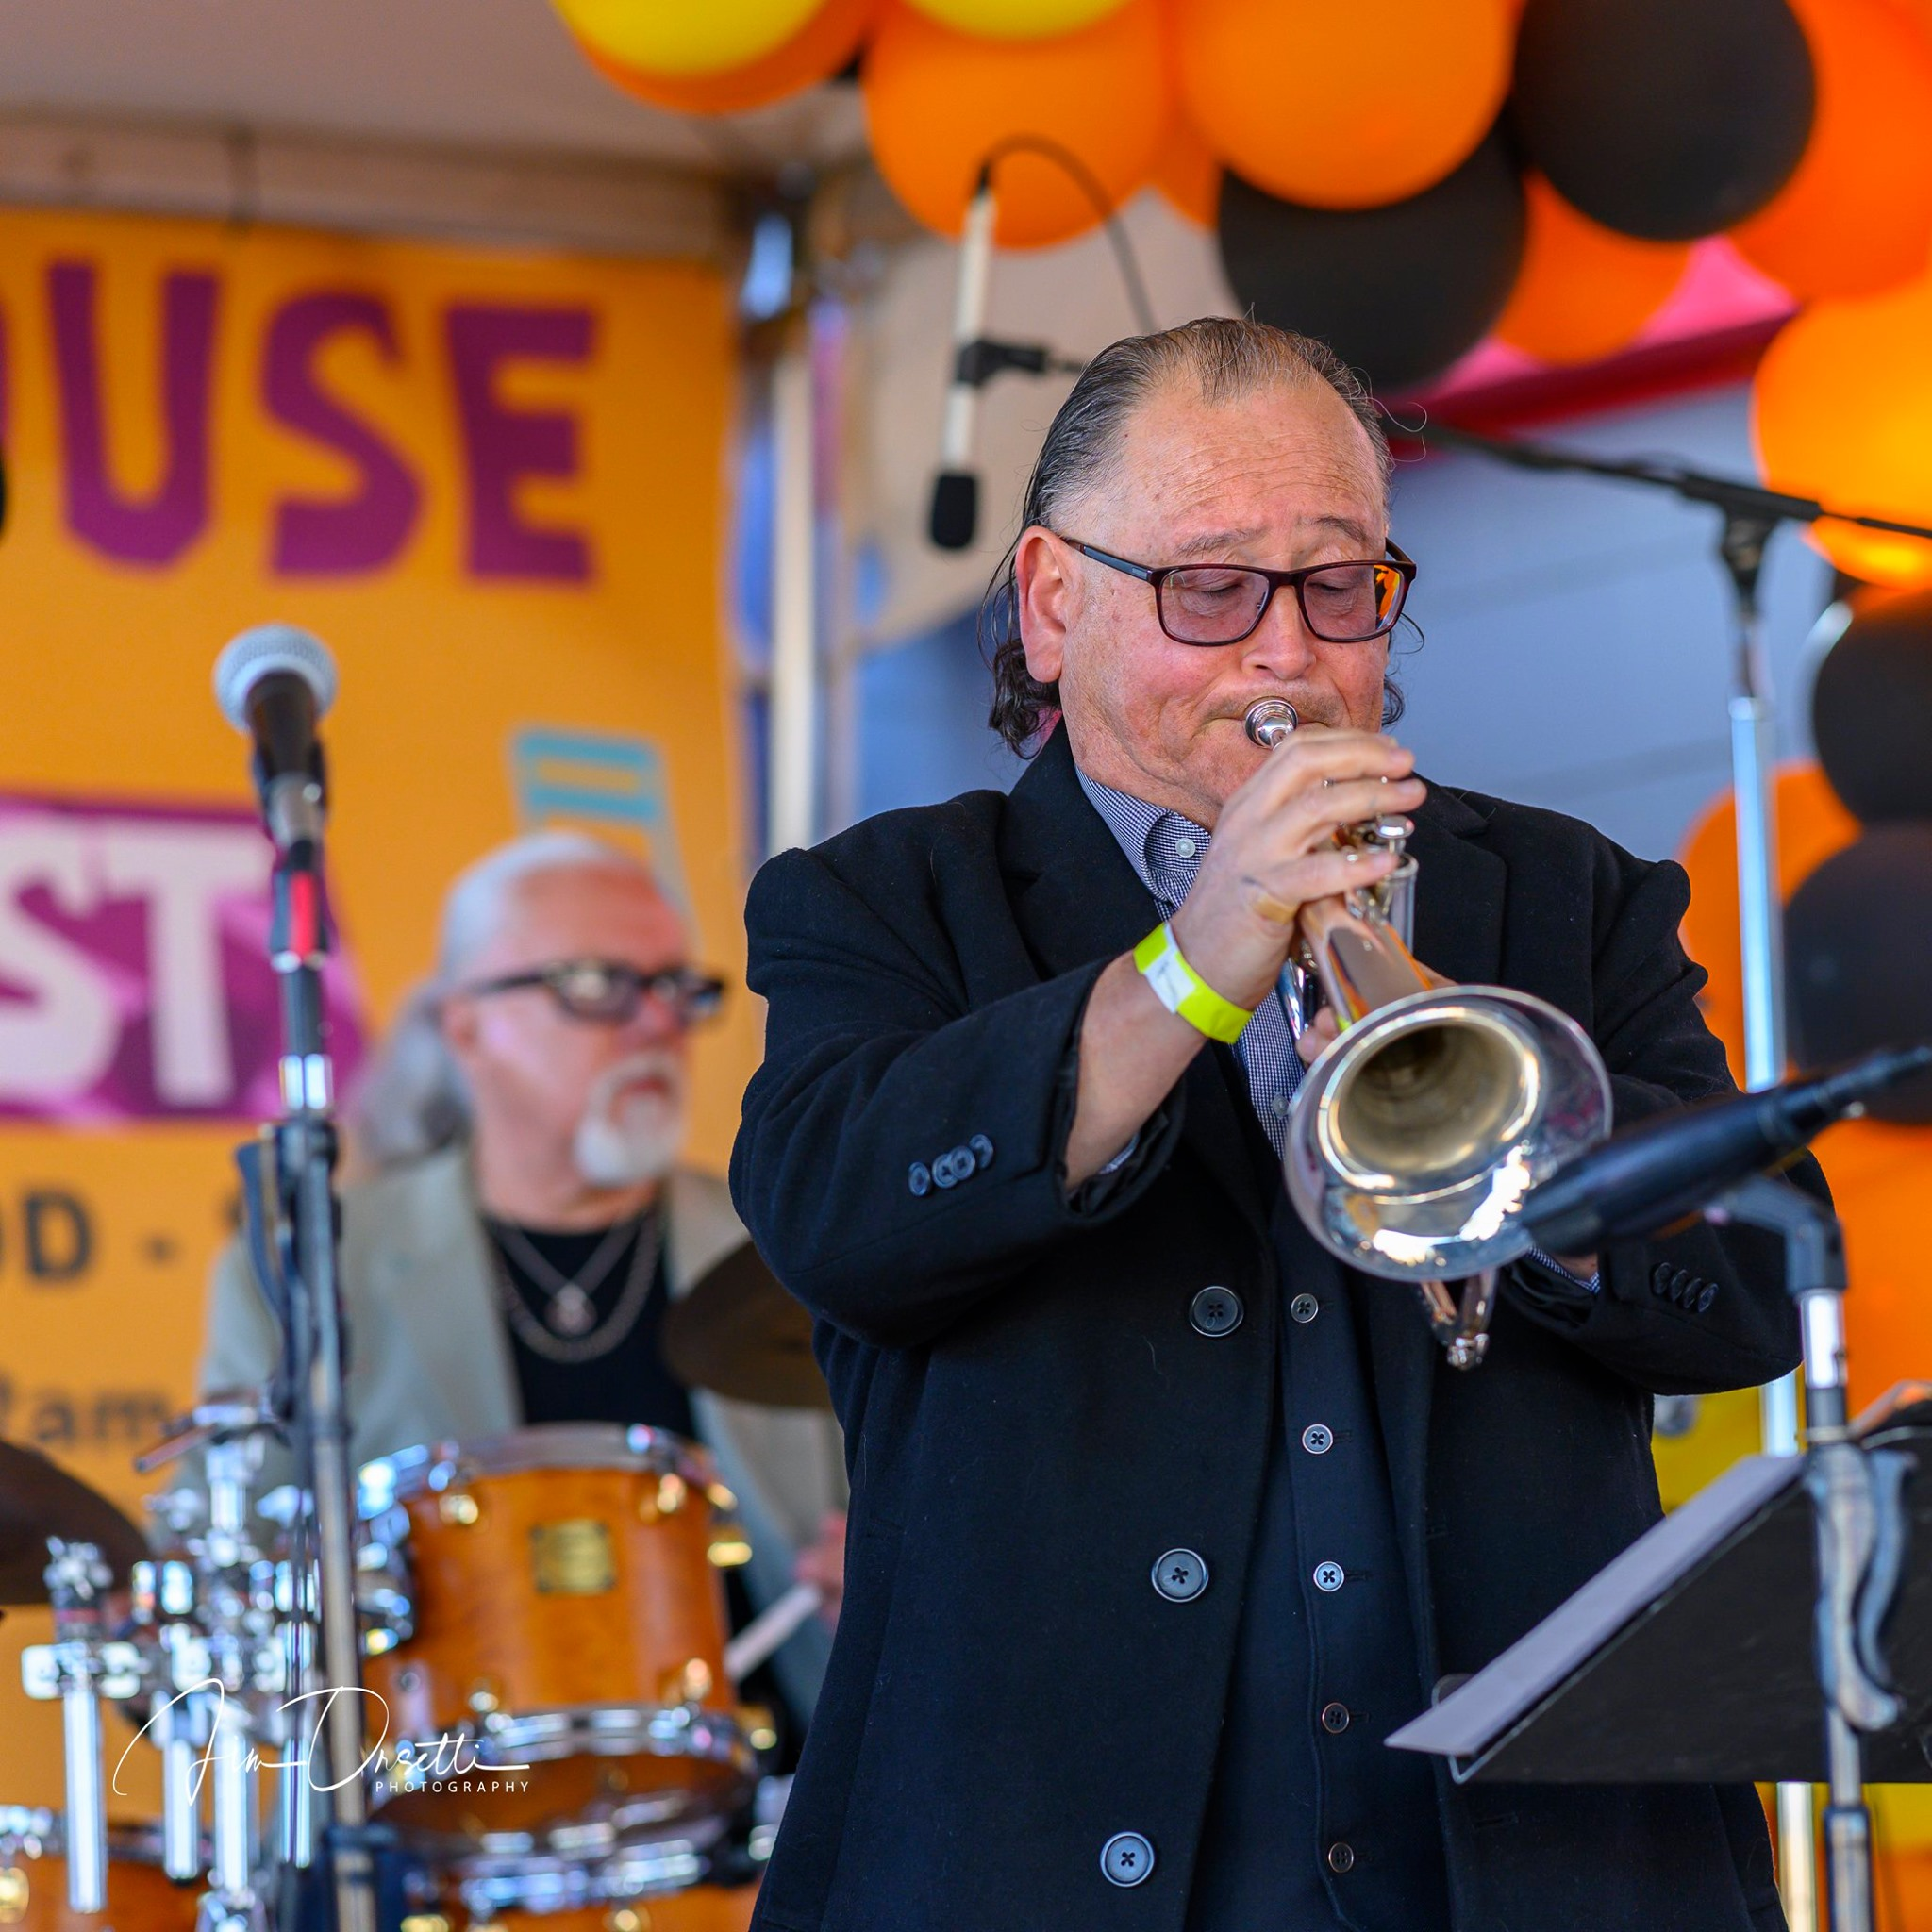 John L. Worley, Jr. at the 2nd Annual 7 Mile House Jazz Fest 2019